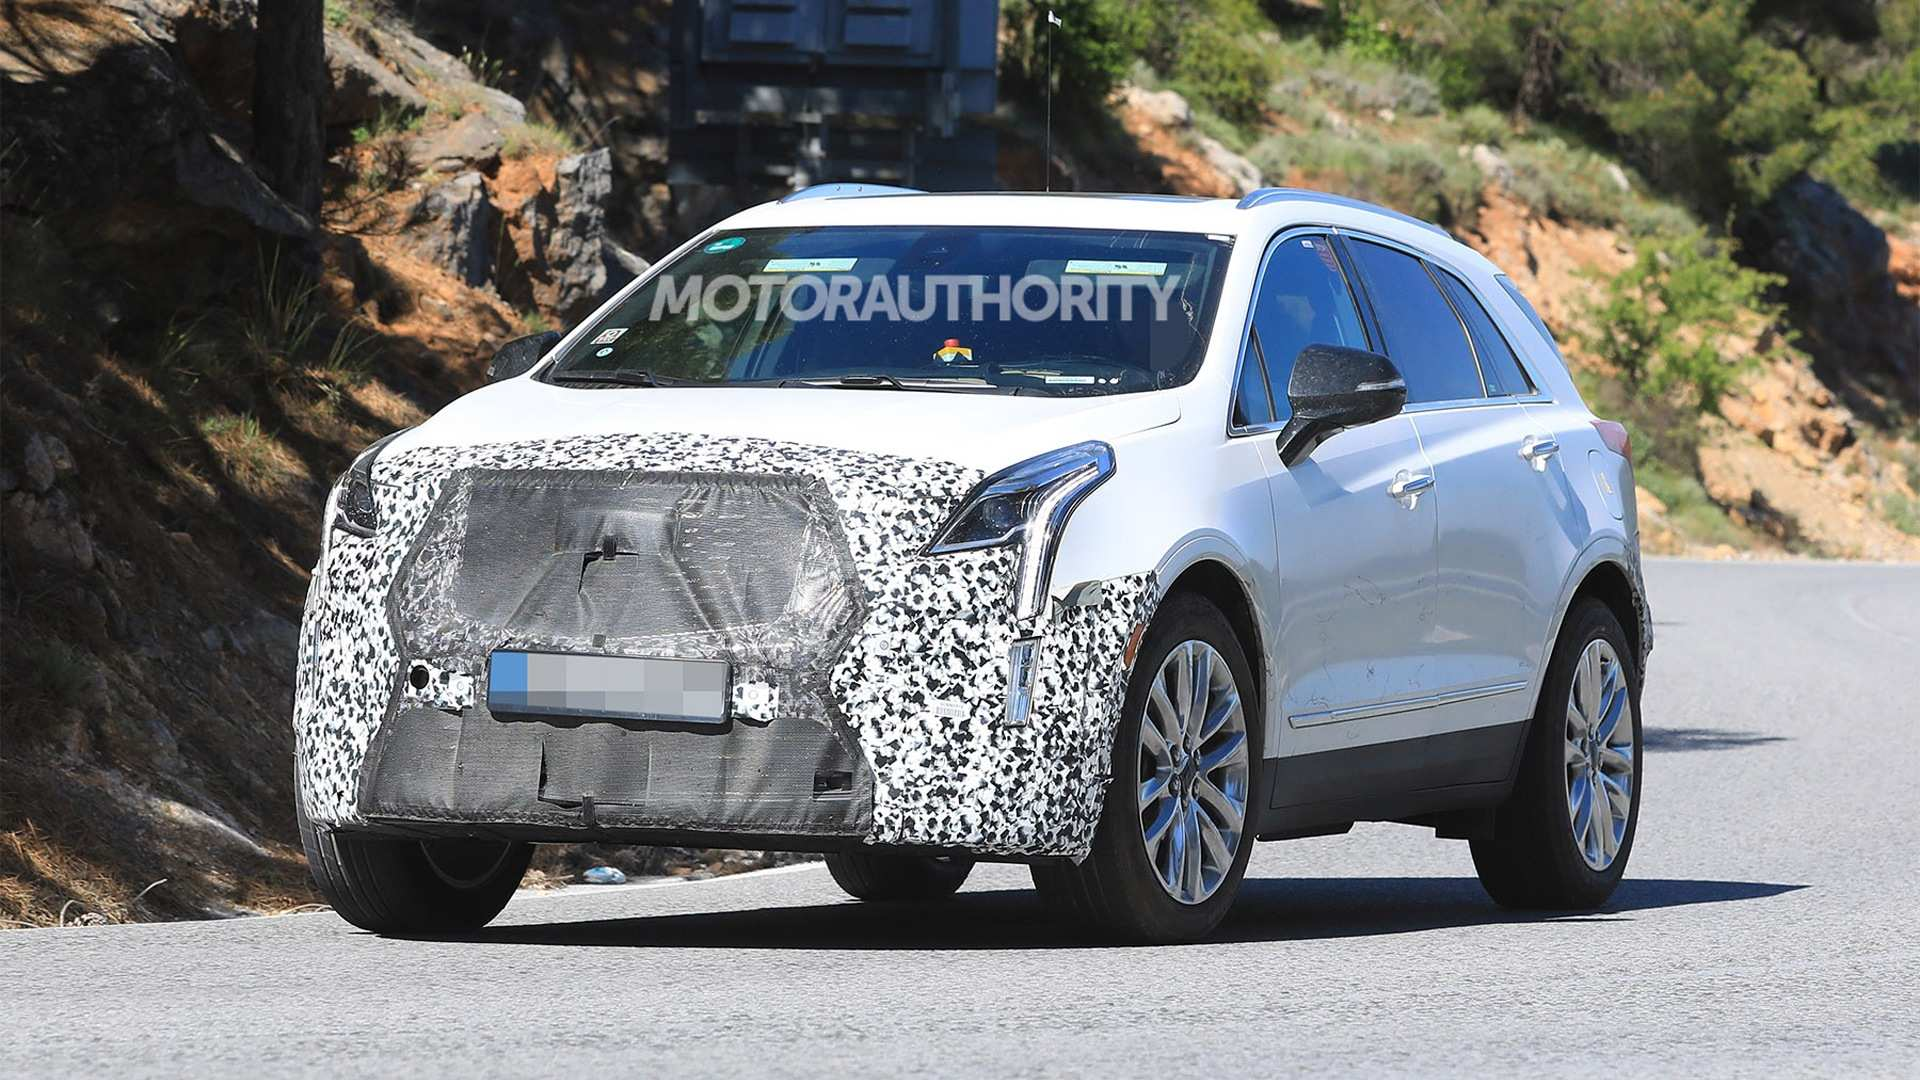 51 Concept of 2020 Spy Shots Cadillac Xt5 Specs and Review with 2020 Spy Shots Cadillac Xt5